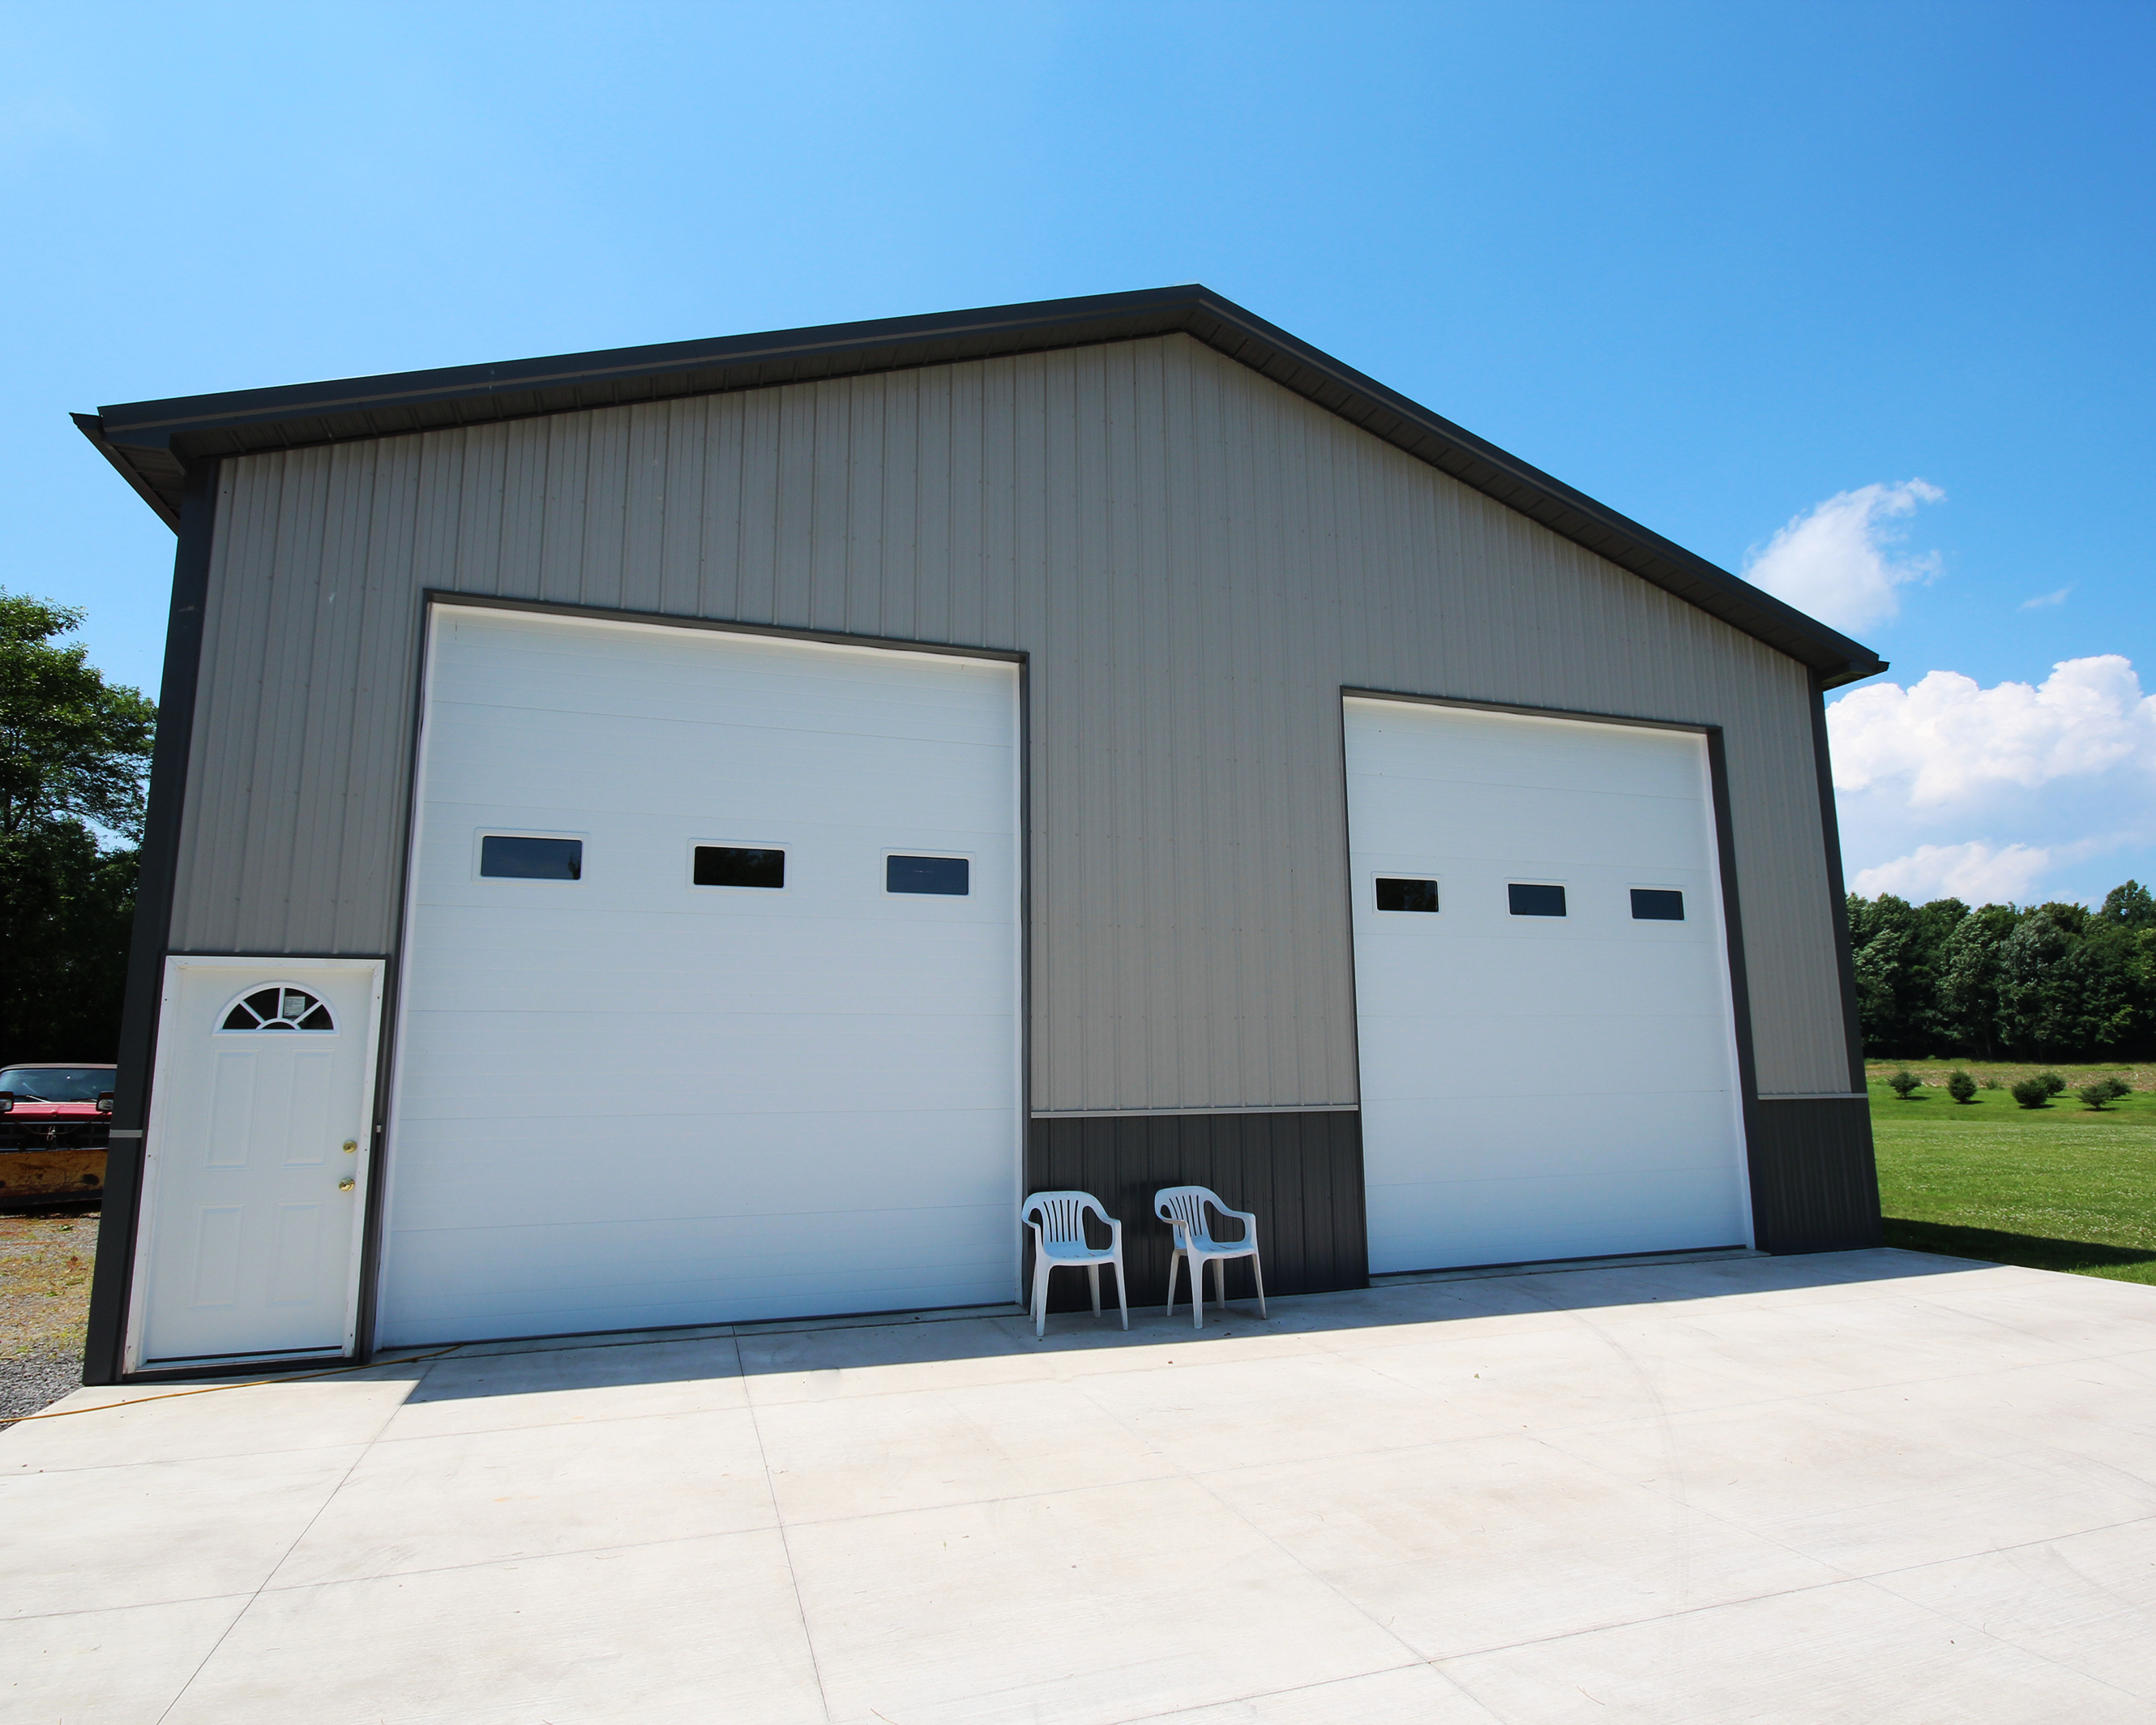 12 X 14 Insulated Garage Door Garage Designs